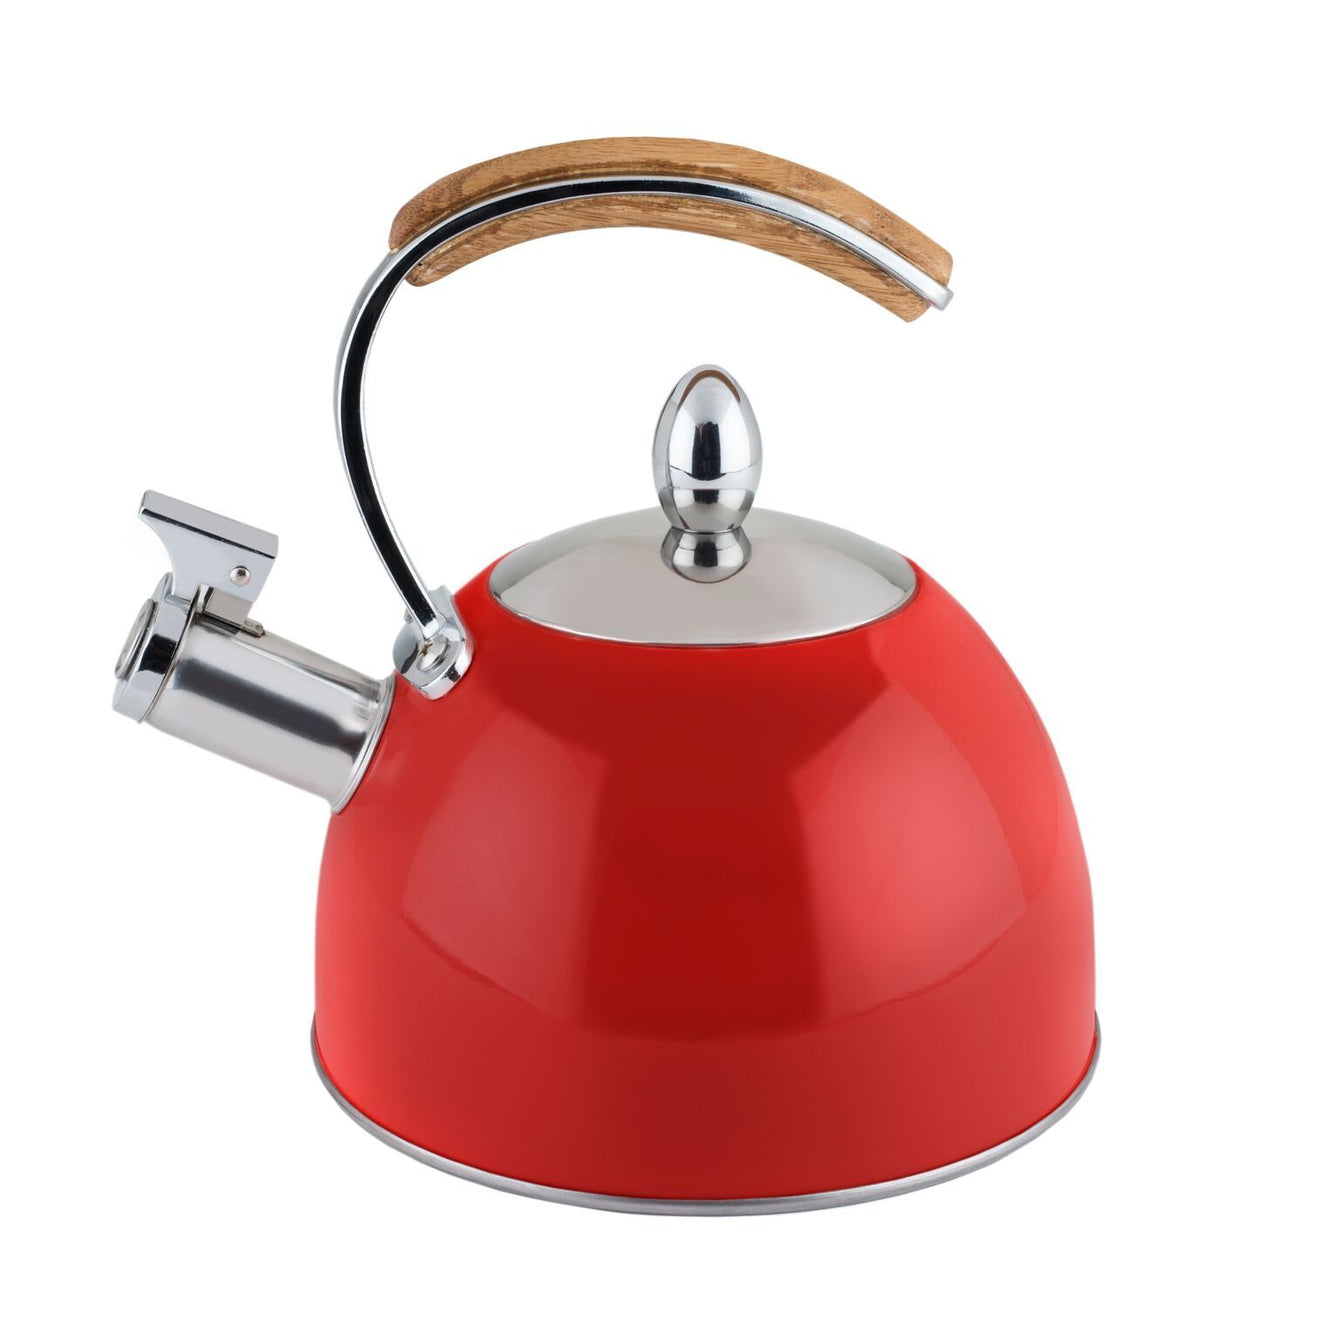 Presley Stainless Steel and Wood Tea Kettle-Home - Coffee + Tea - Tea Pots + Kettles-PINKY UP-Red-Peccadilly